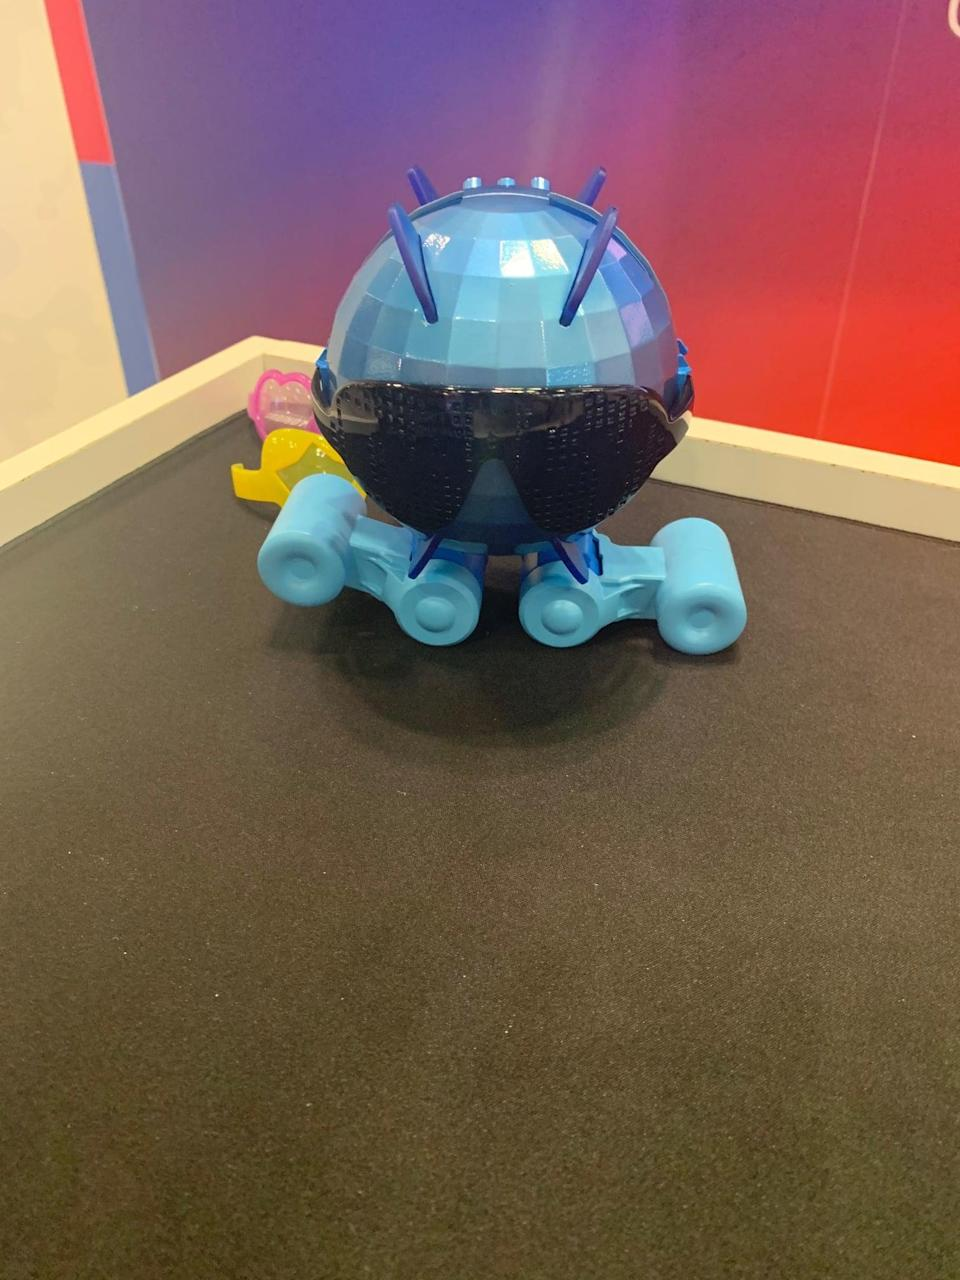 <p>Prepare to get down with Tomy Dancy Beatz ($70), an interactive dancing robot kids 6 and up are sure to obsess over. Complete with a free app, little ones can program Dancy Beatz to execute custom dance moves. Pretty neat, right? Look for it in stores in fall 2020.</p>